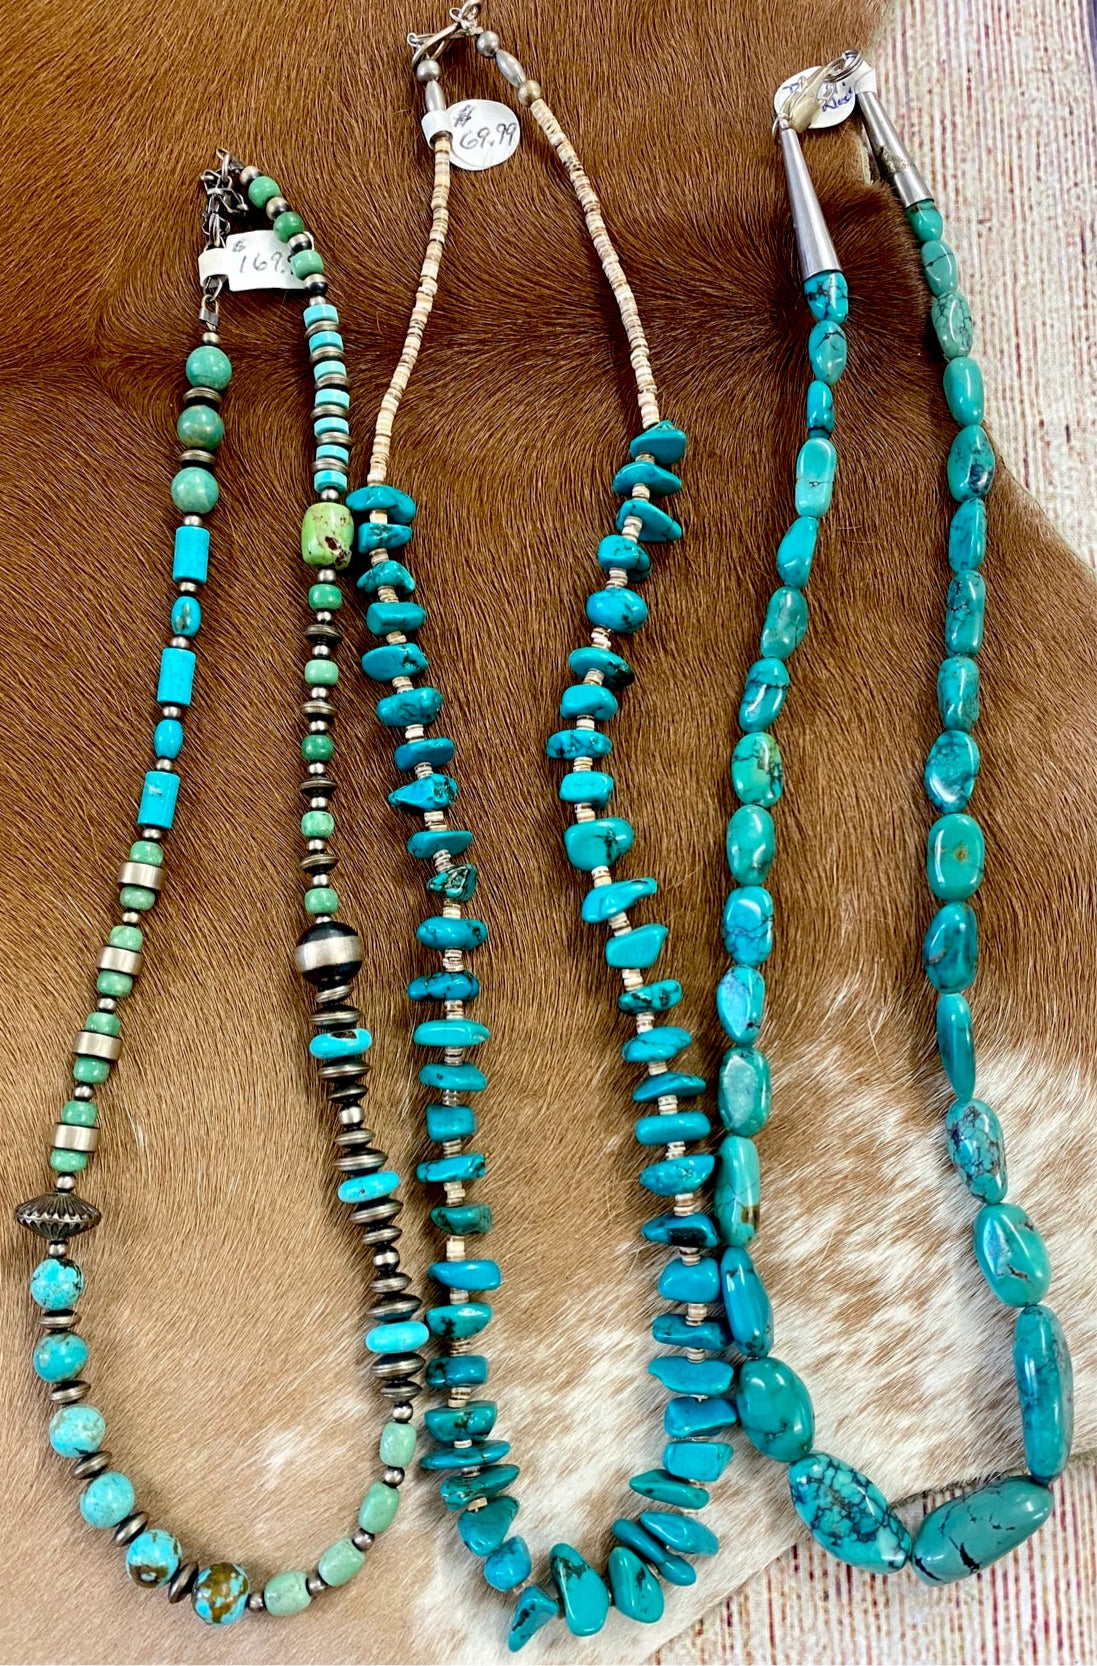 The Stapleton Turquoise Necklace - Ny Texas Style Boutique